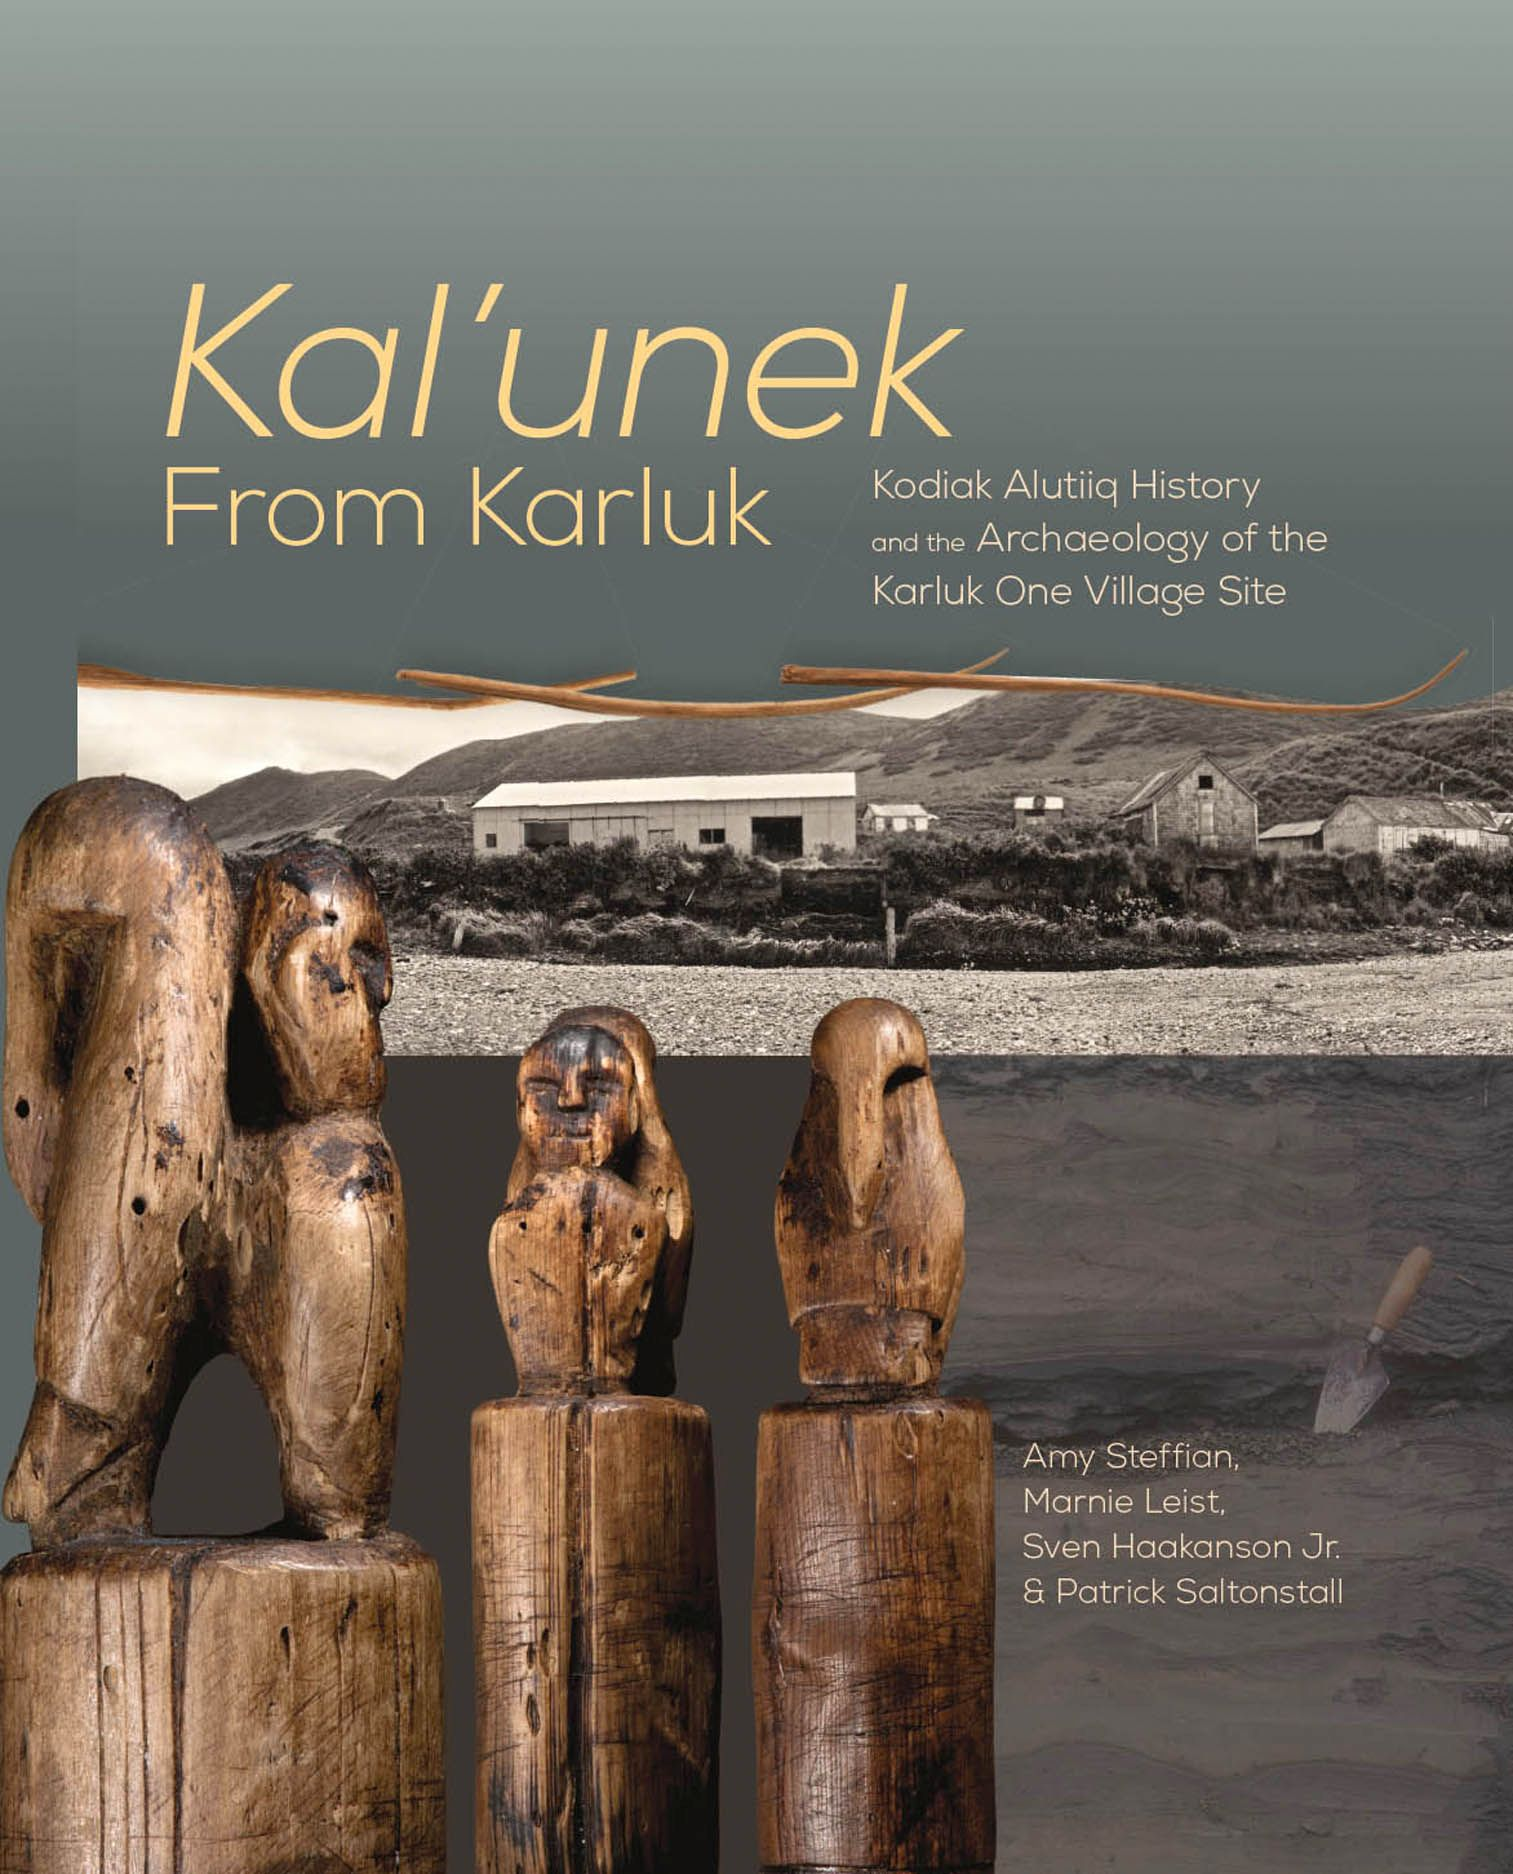 Kal'unek-from Karluk: Kodiak Alutiiq History and the Archaeology of the Karluk One Village Site